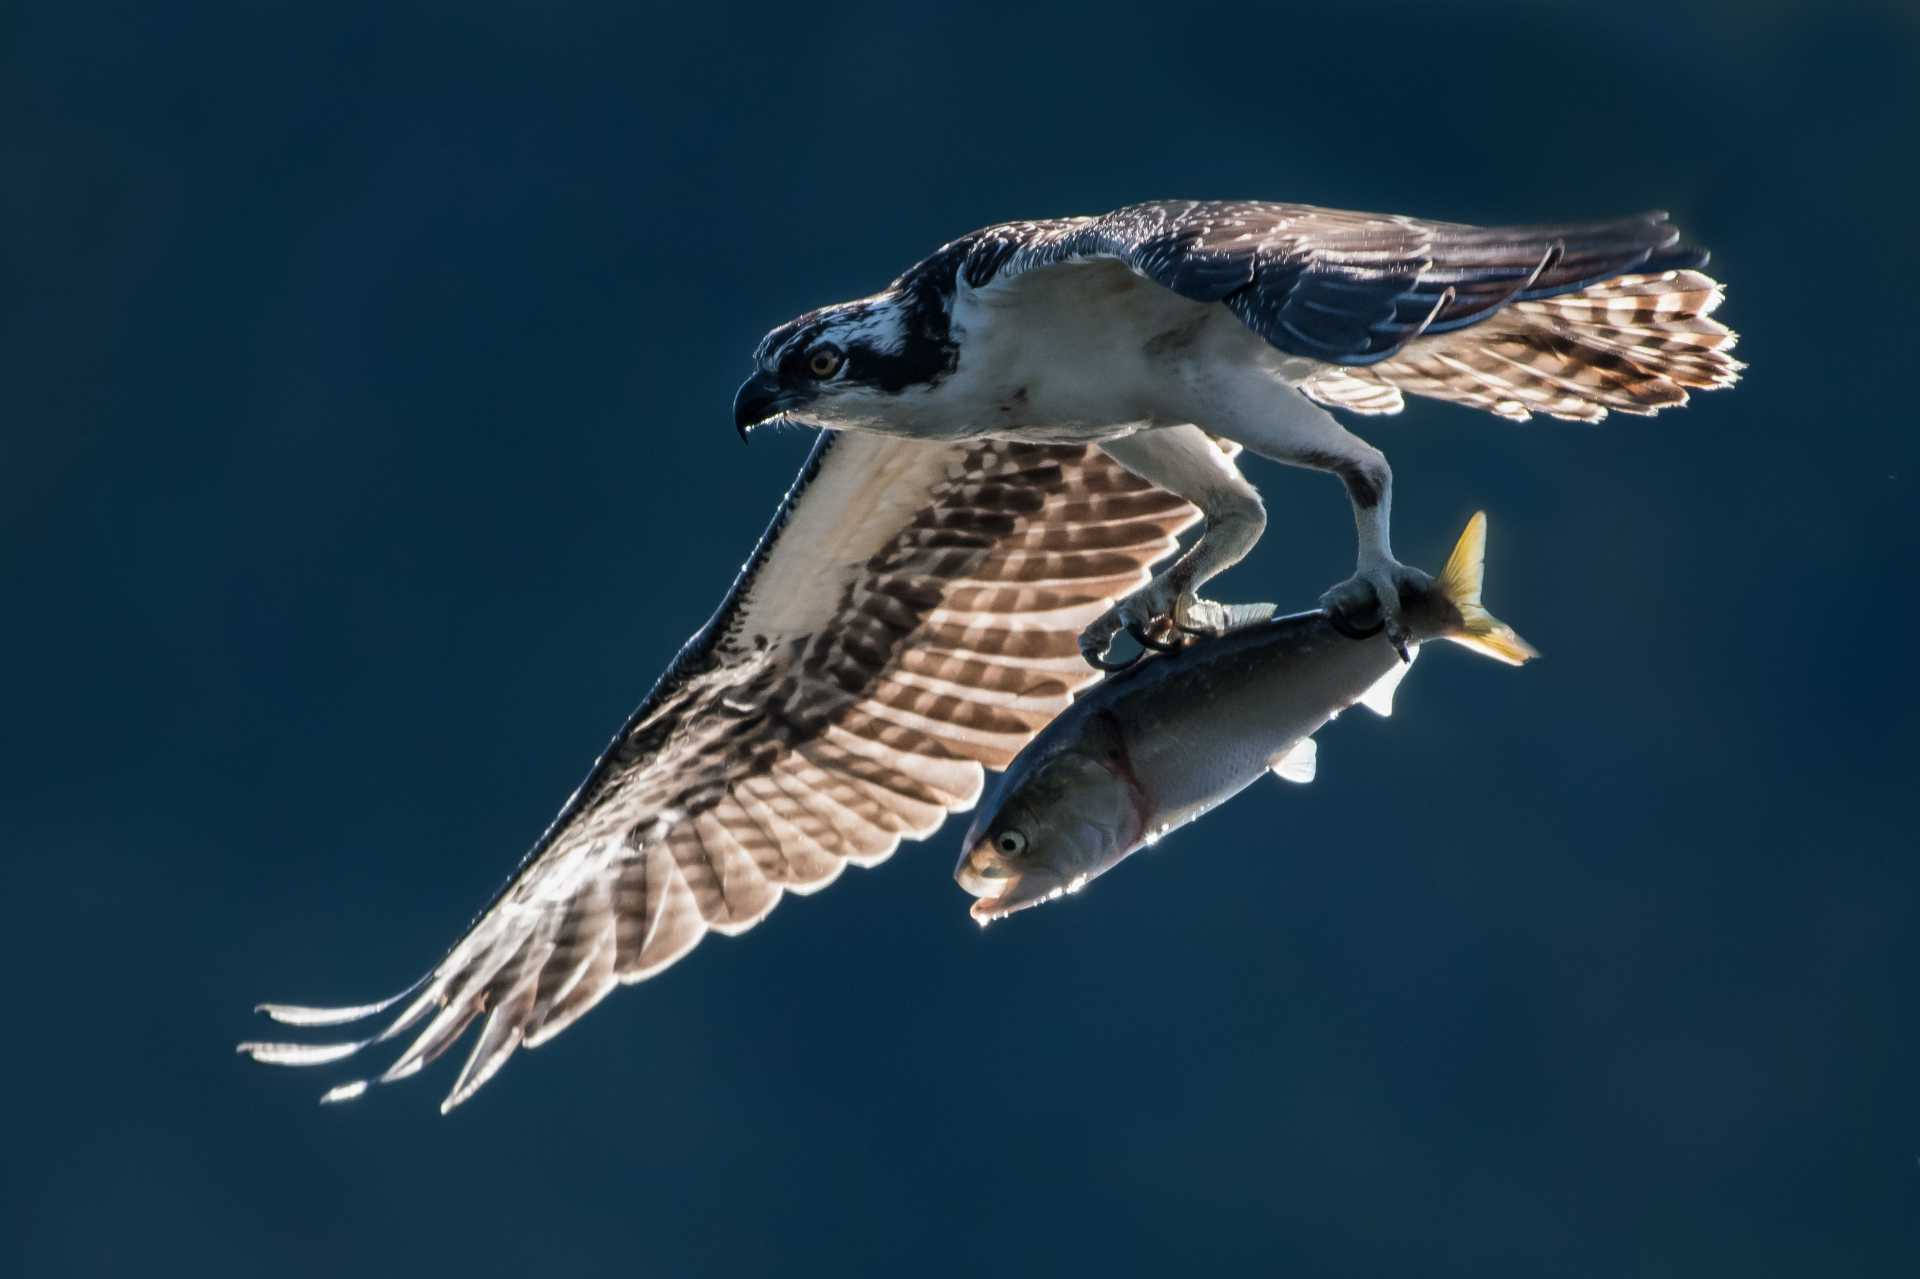 Hawk flies over water with fish in its claws.